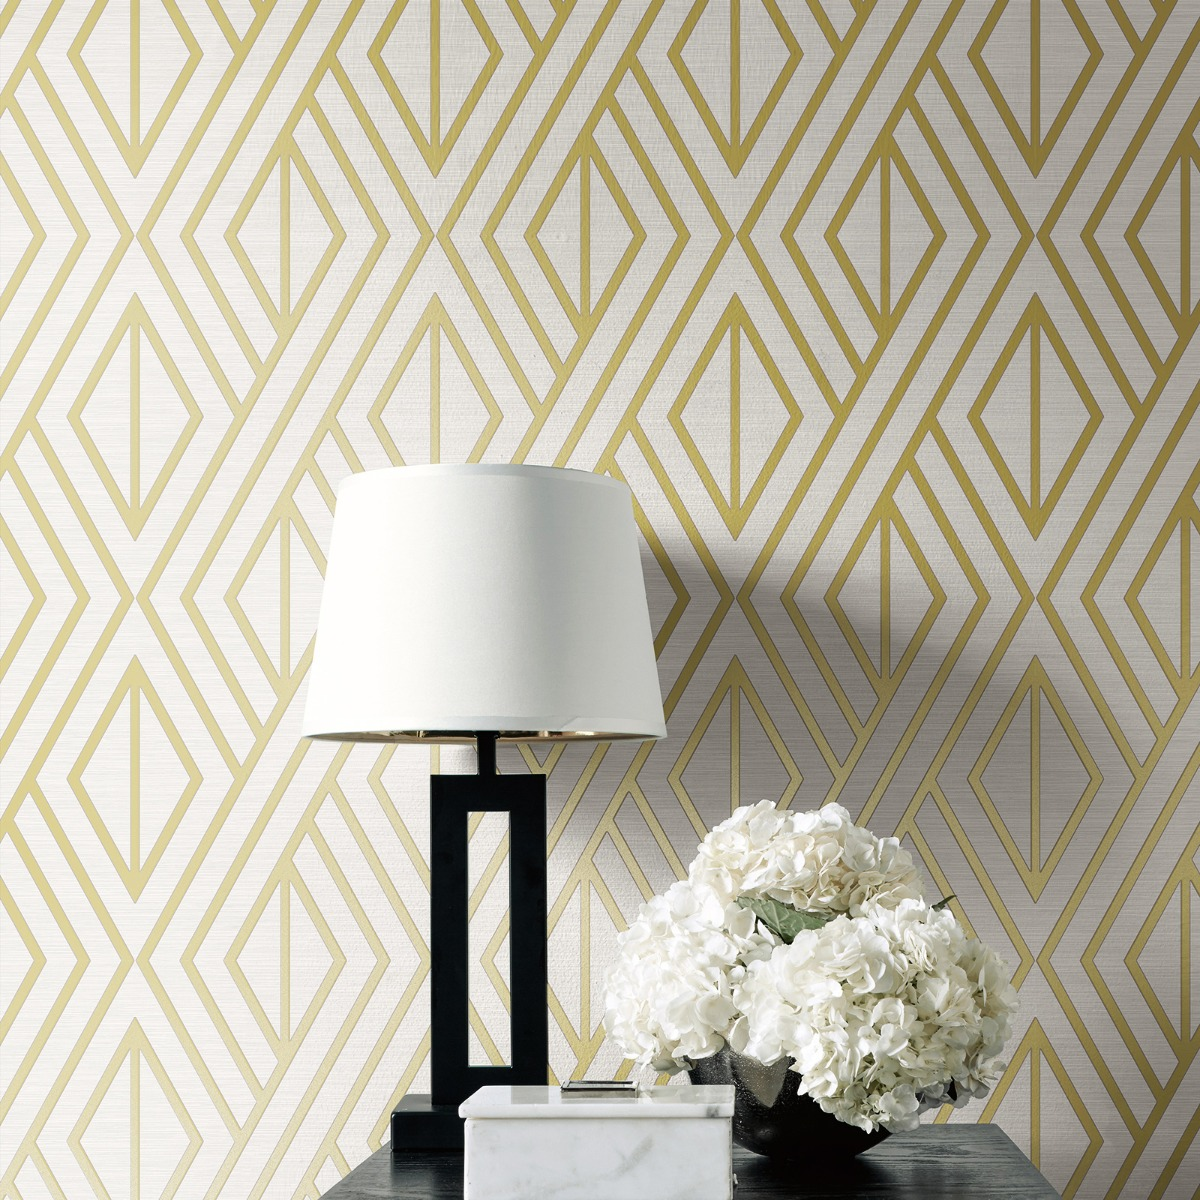 Geometric Wallpaper White and Gold Pear Tree